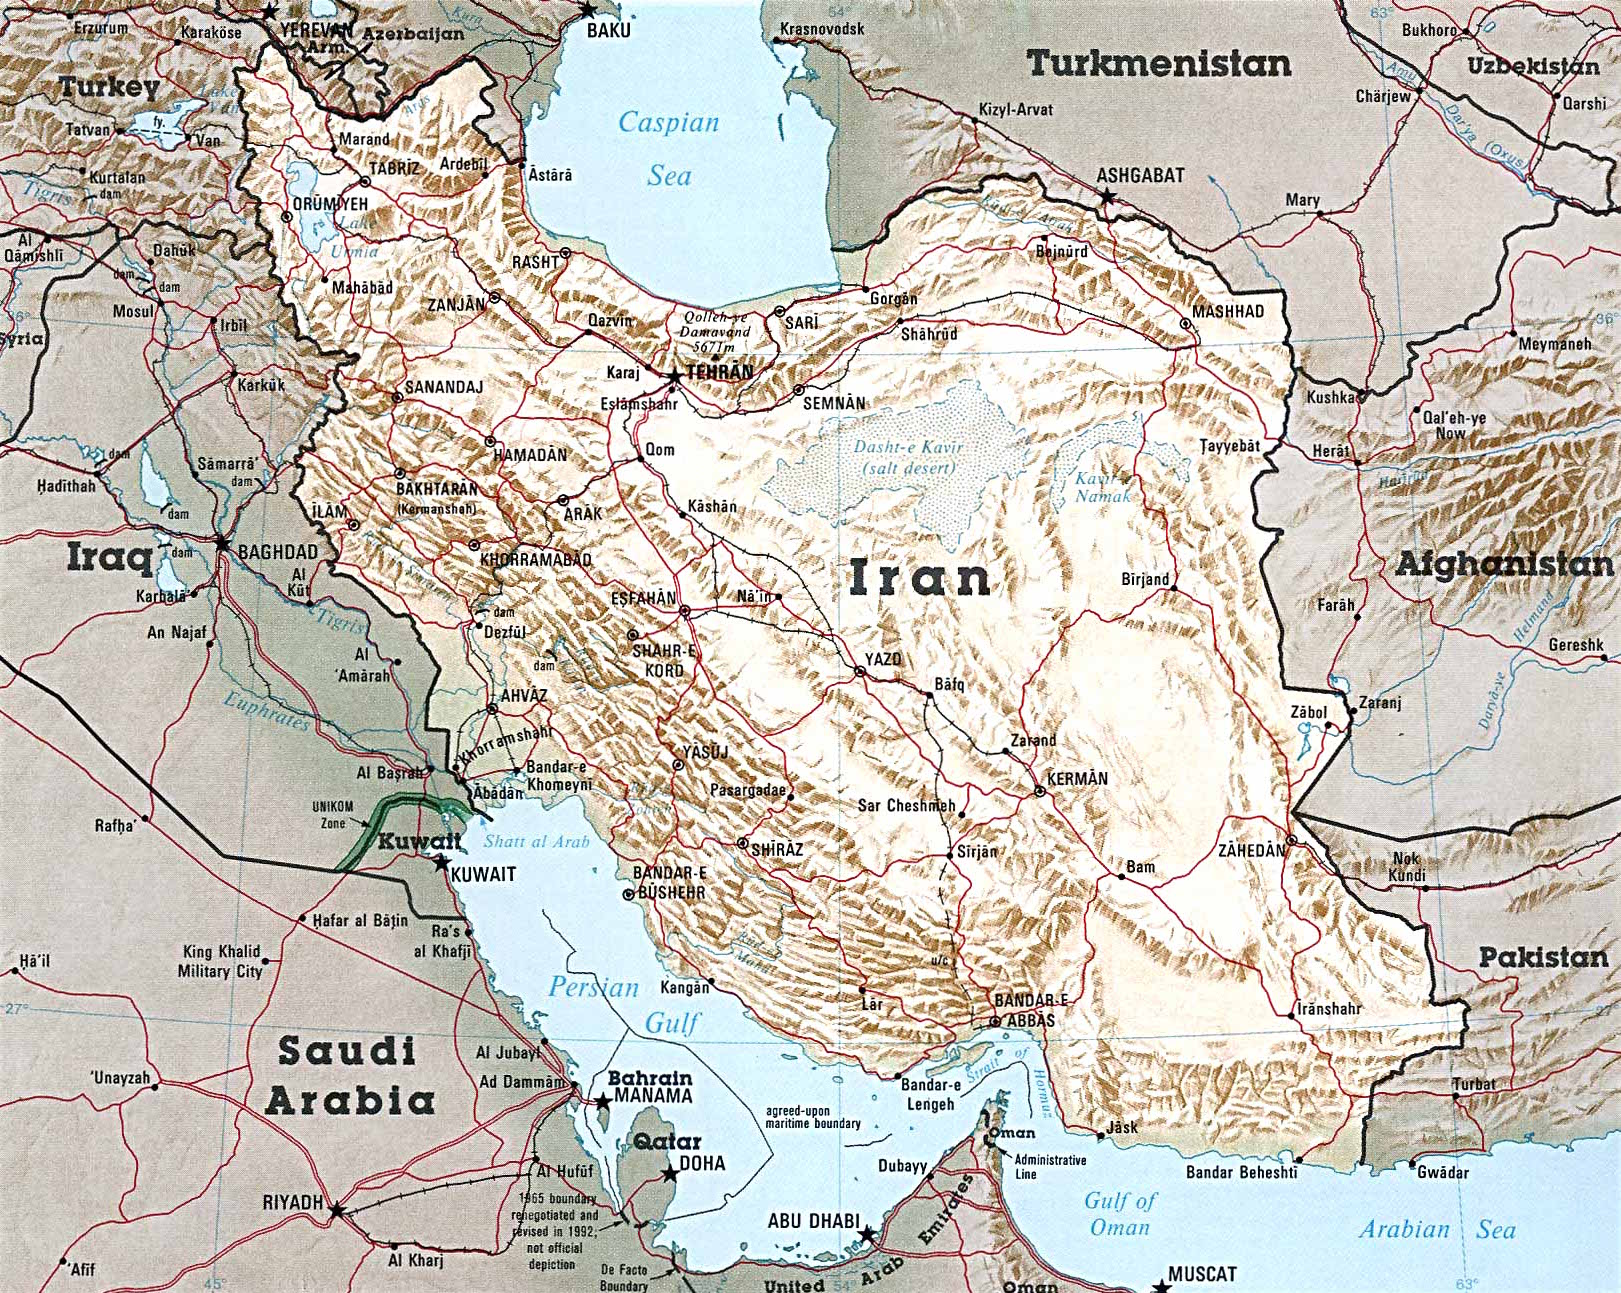 map of iran map from public domain click to enlarge